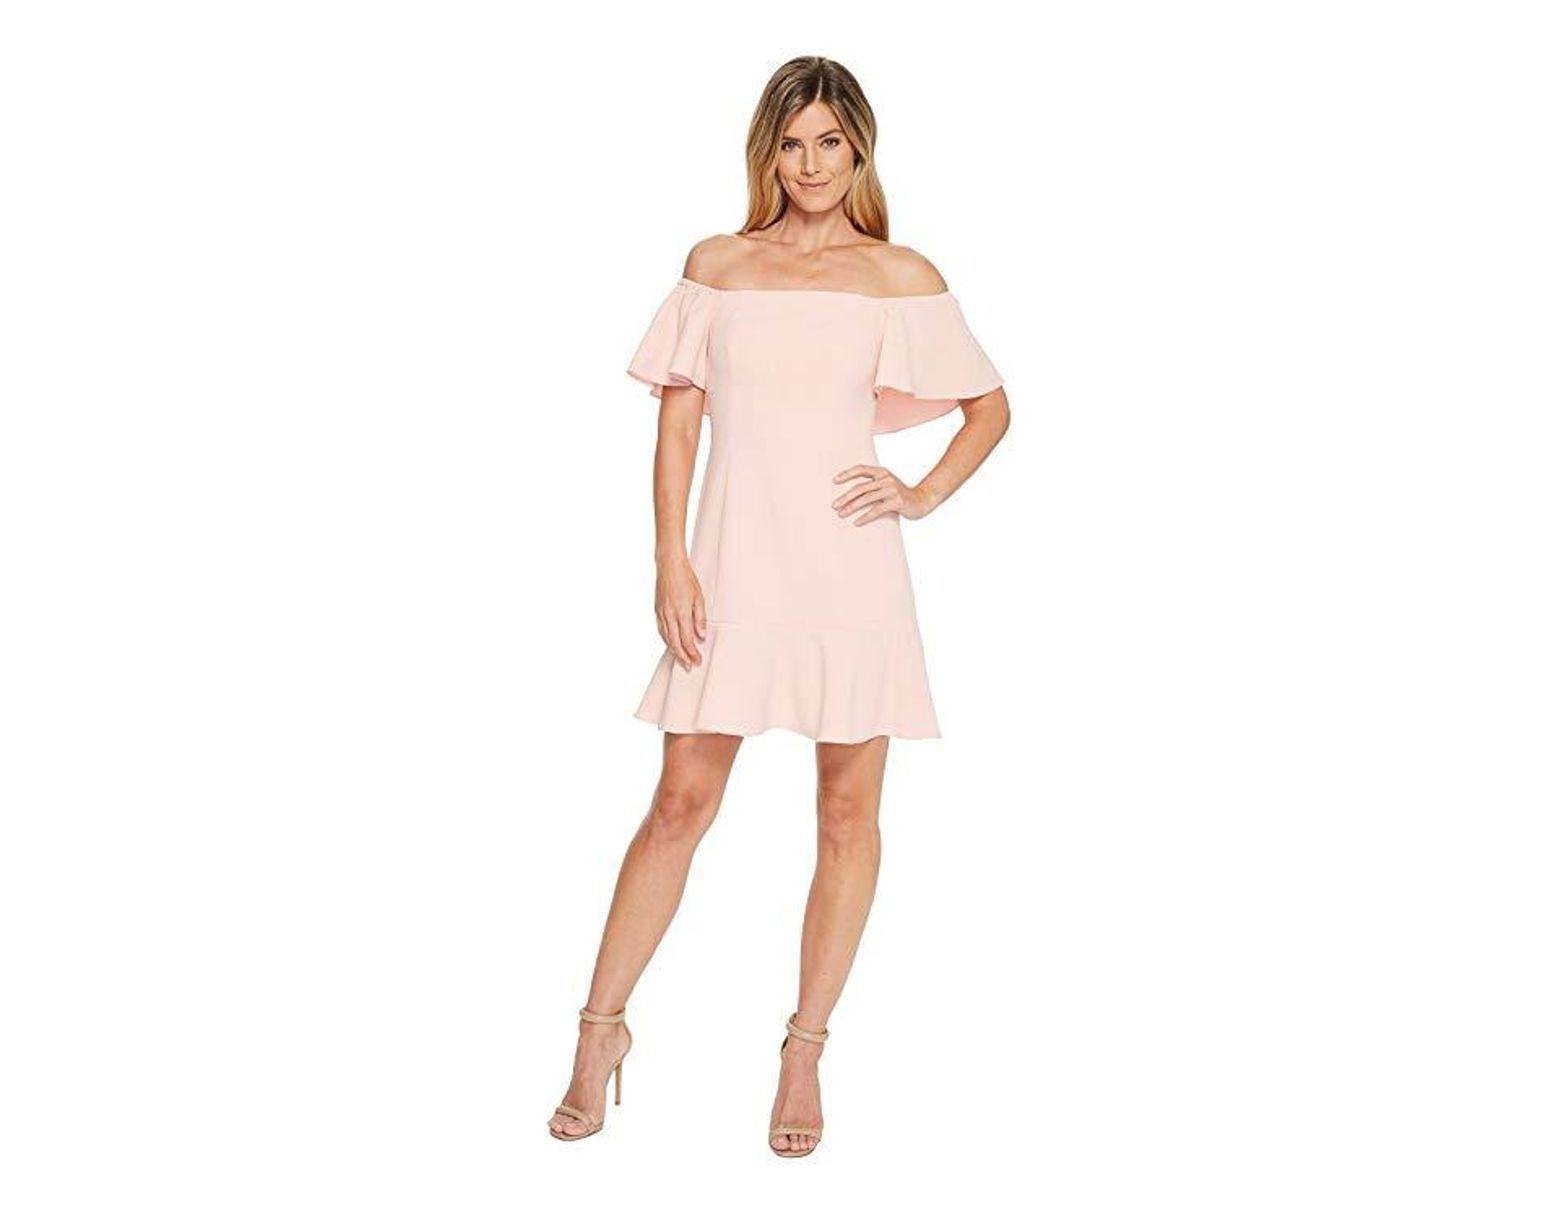 c73db67ae36797 Vince Camuto Off The Shoulder Dress With Top Ruffle And Flounce (blush)  Dress in Pink - Save 64% - Lyst